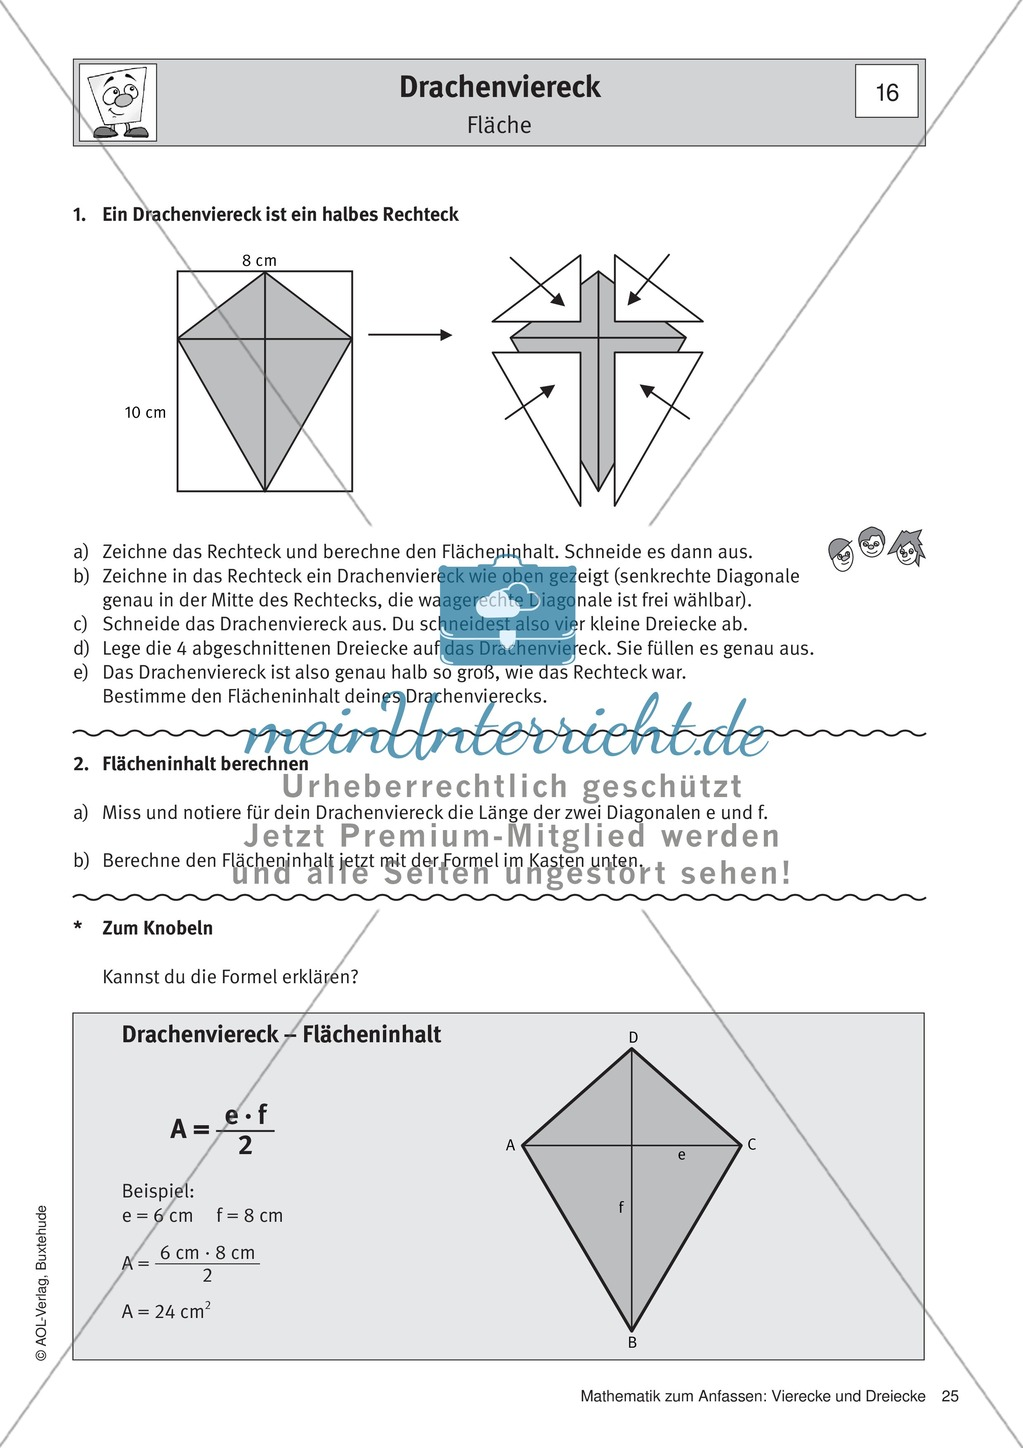 drachenviereck eigenschaften fl che beispiel. Black Bedroom Furniture Sets. Home Design Ideas